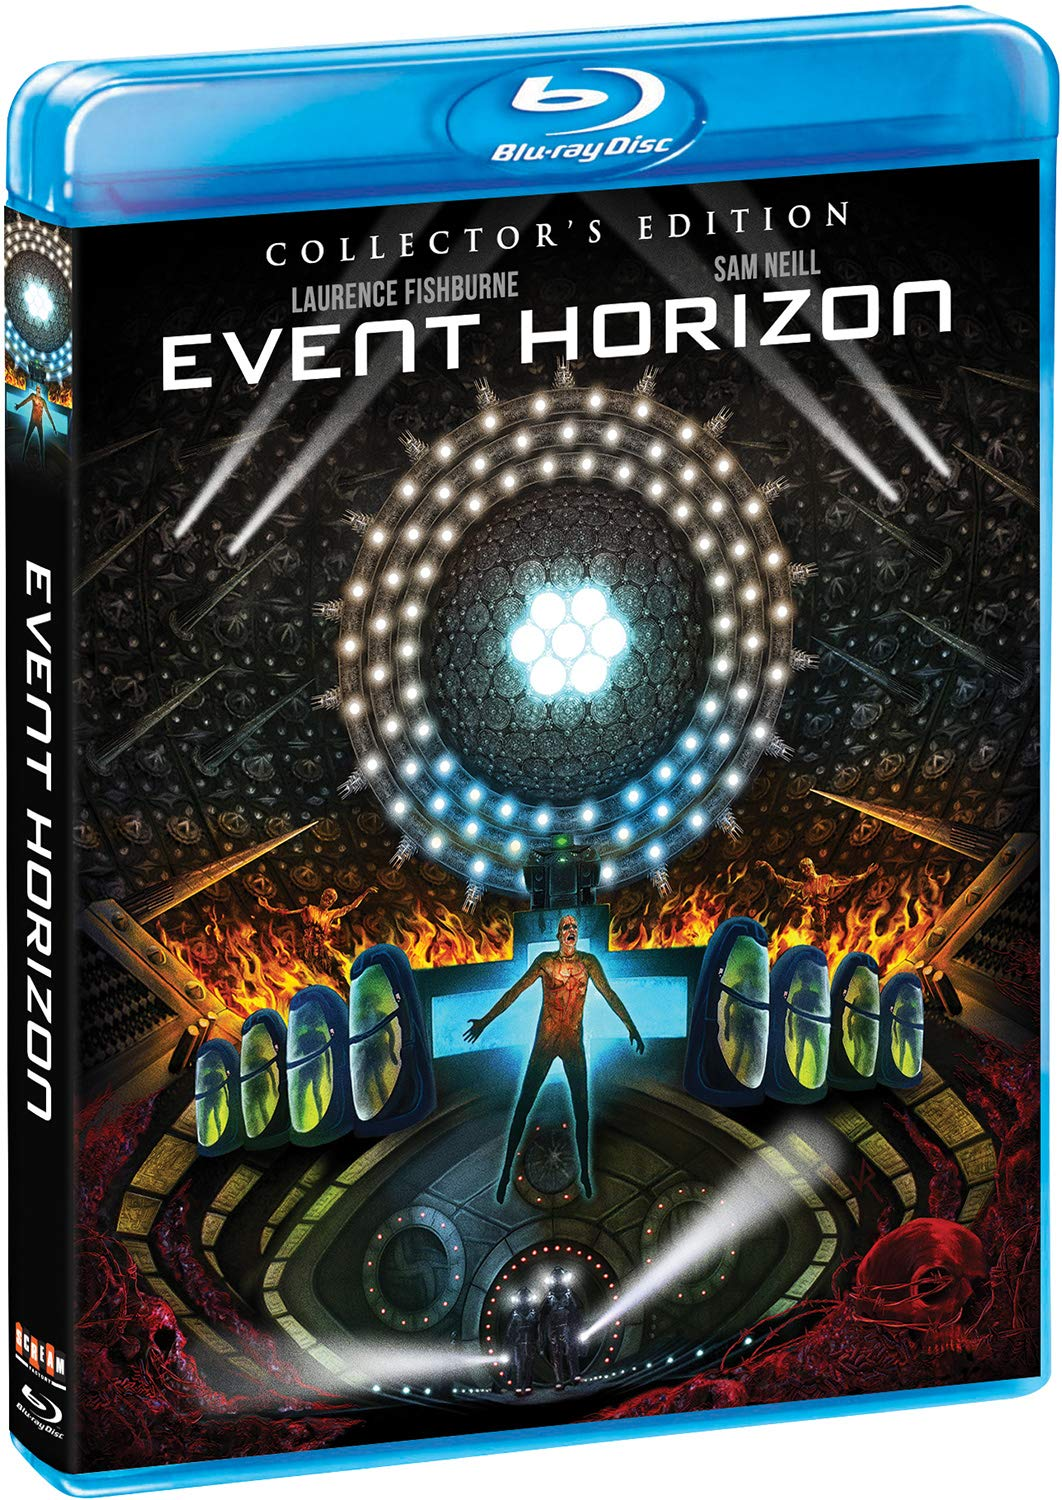 EVENT HORIZON COLLECTOR'S EDITION NOW AVAILABLE